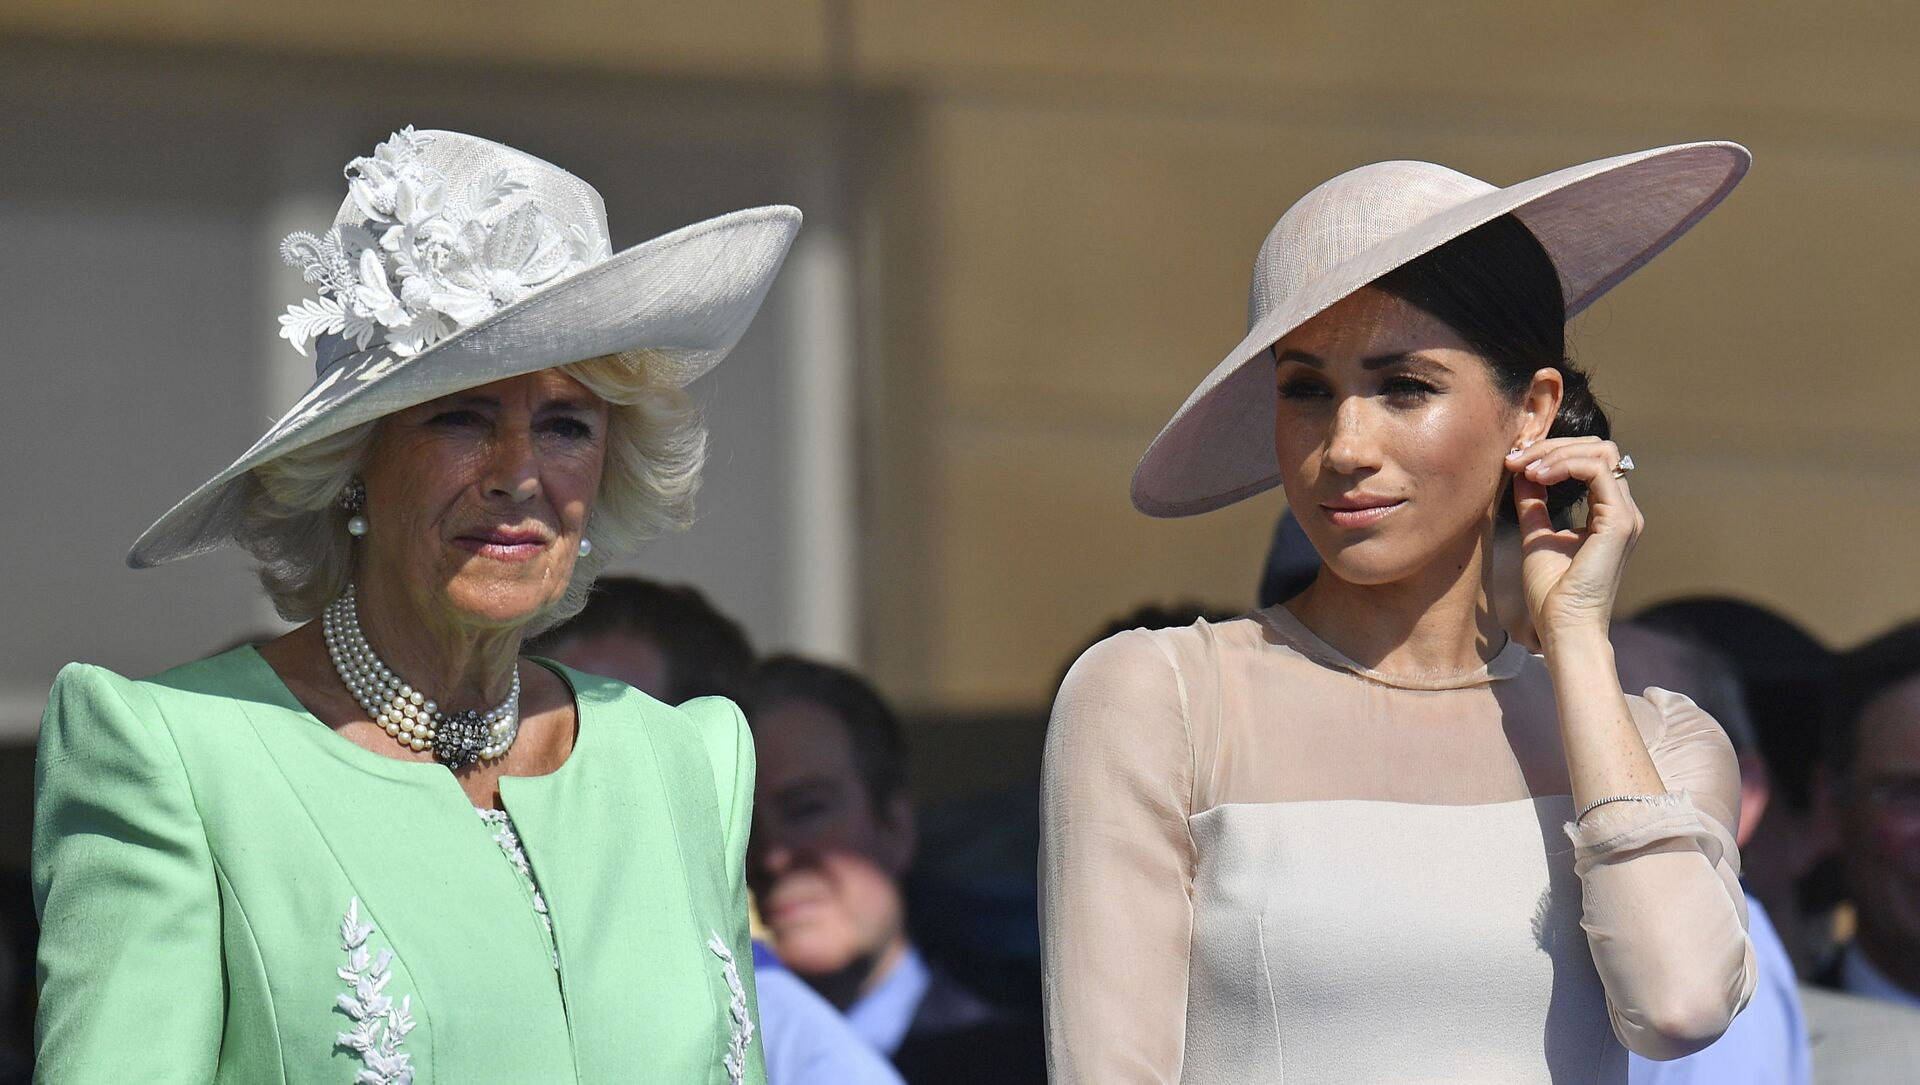 Meghan, the Duchess of Sussex, right, stands with Camilla, the Duchess of Cornwall, during a garden party at Buckingham Palace in London, Tuesday May 22, 2018. - Sputnik International, 1920, 22.08.2021